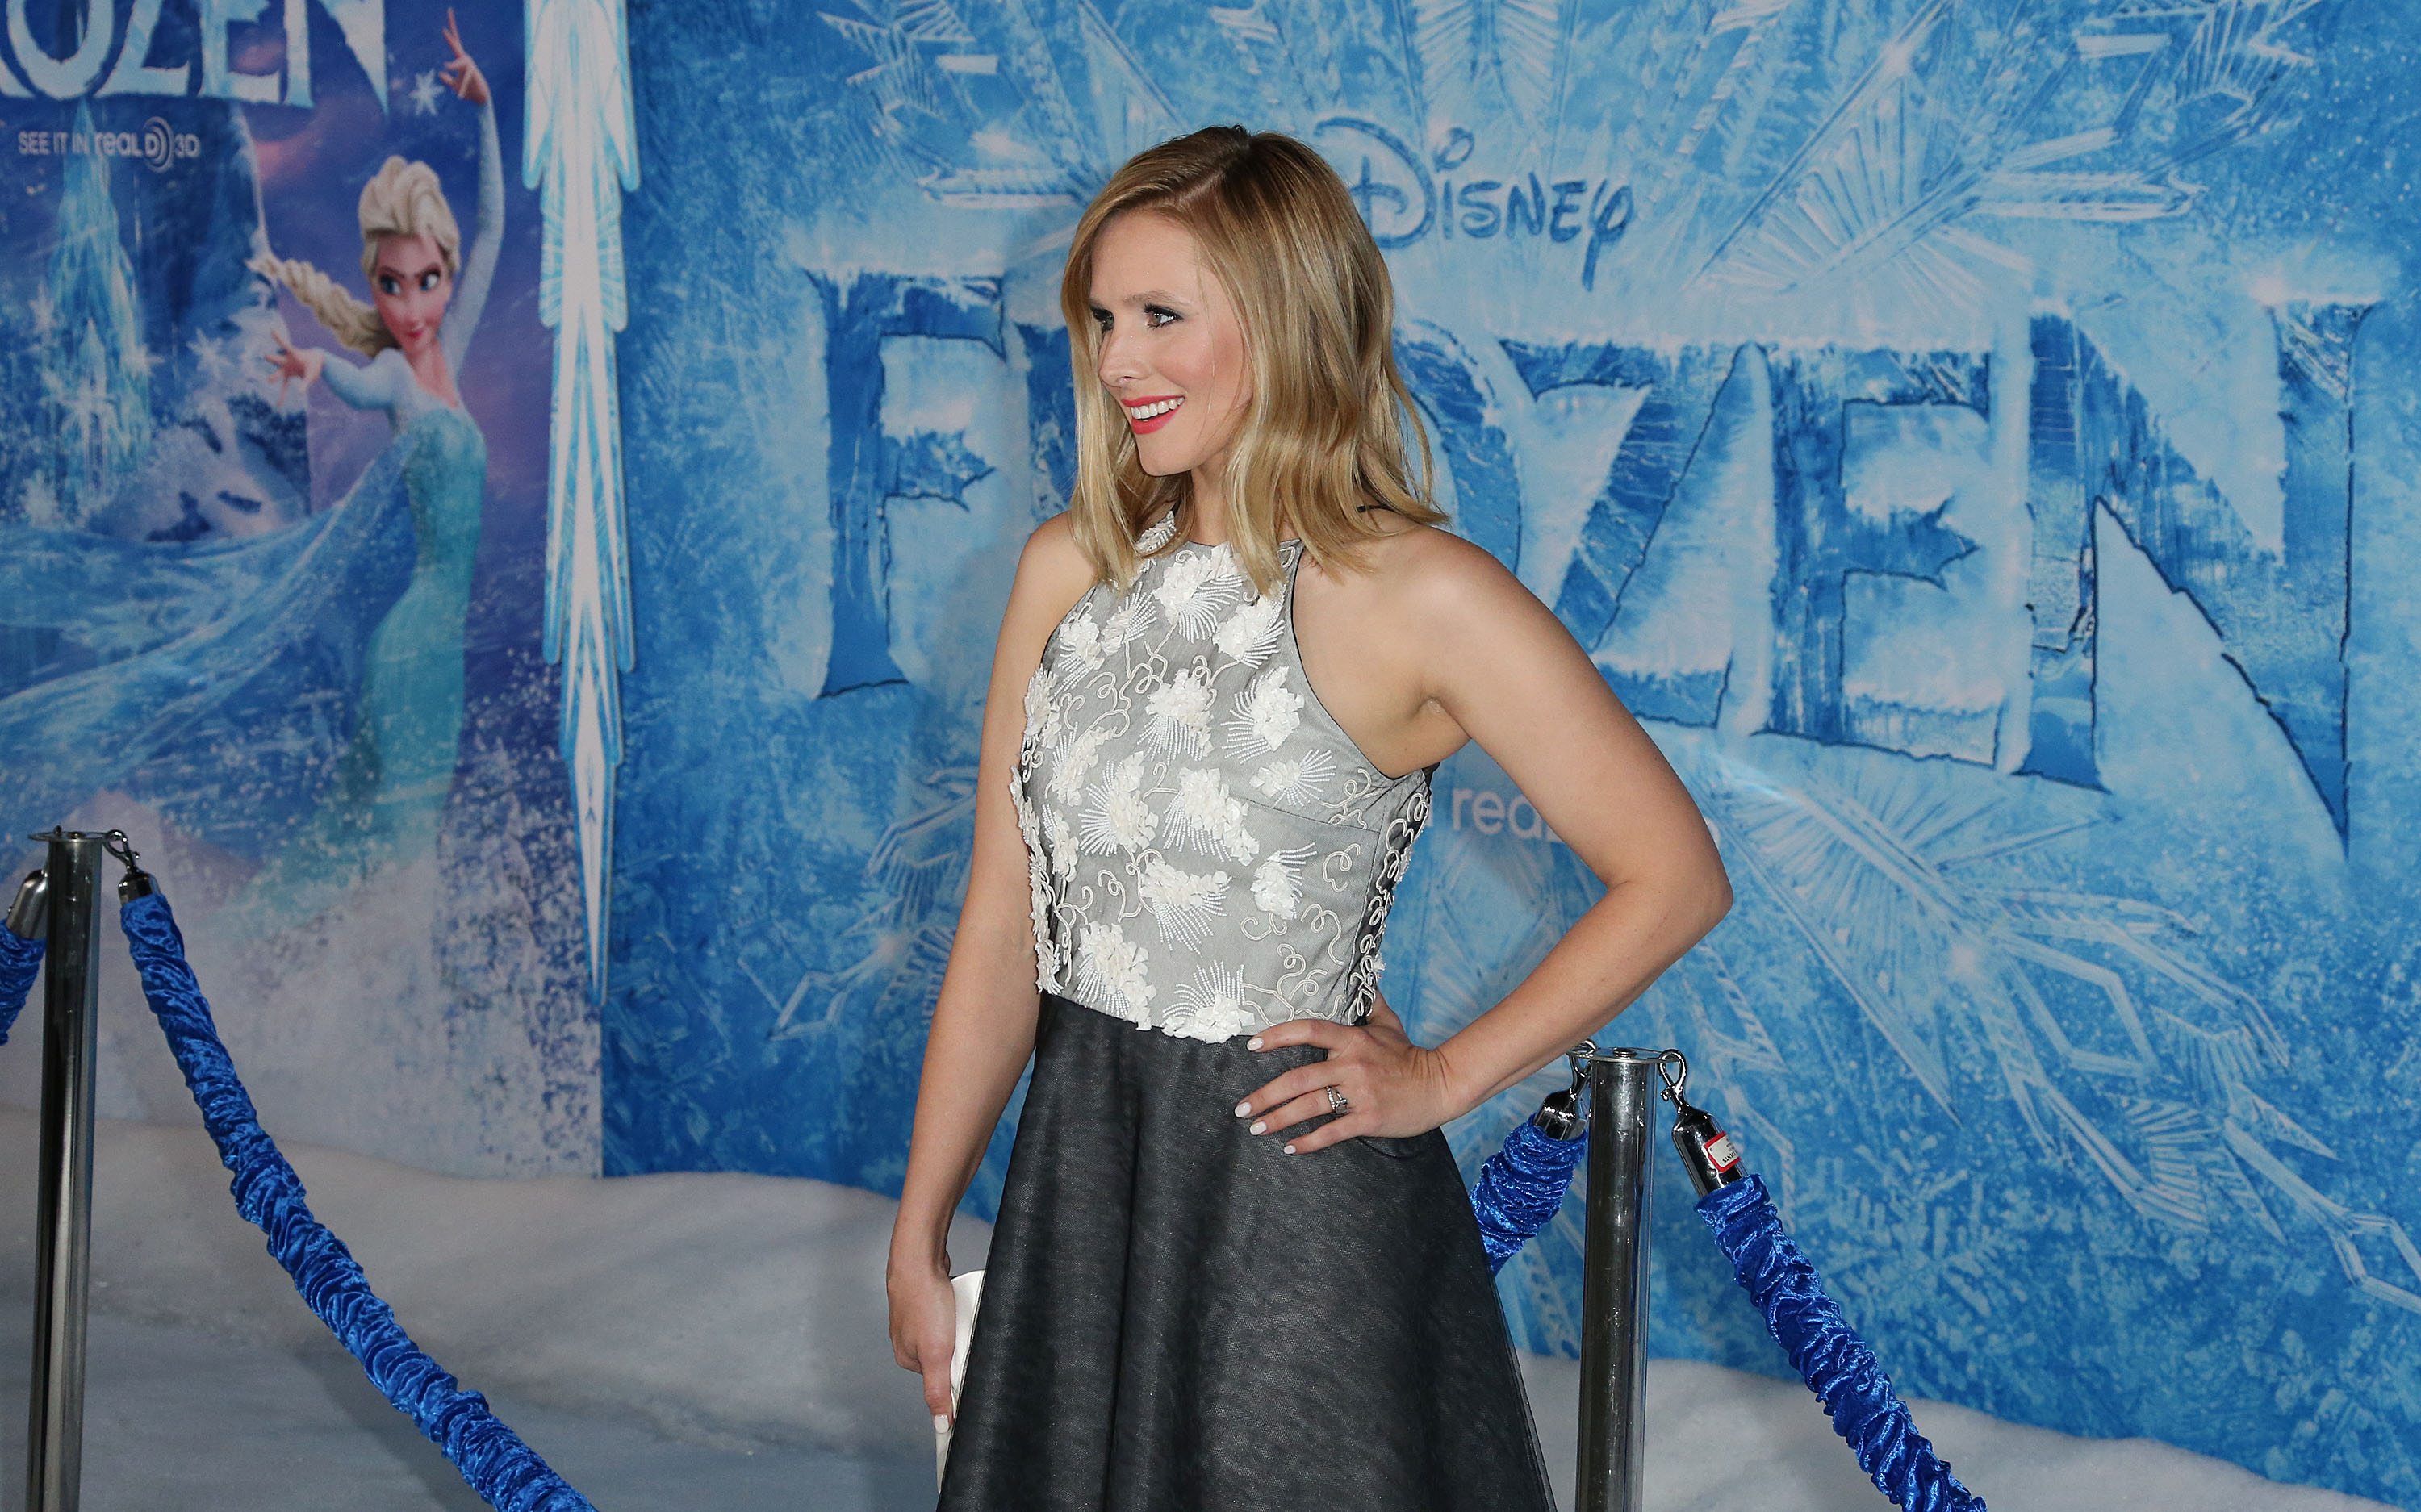 Premiere Of Walt Disney Animation Studios' 'Frozen' - Arrivals